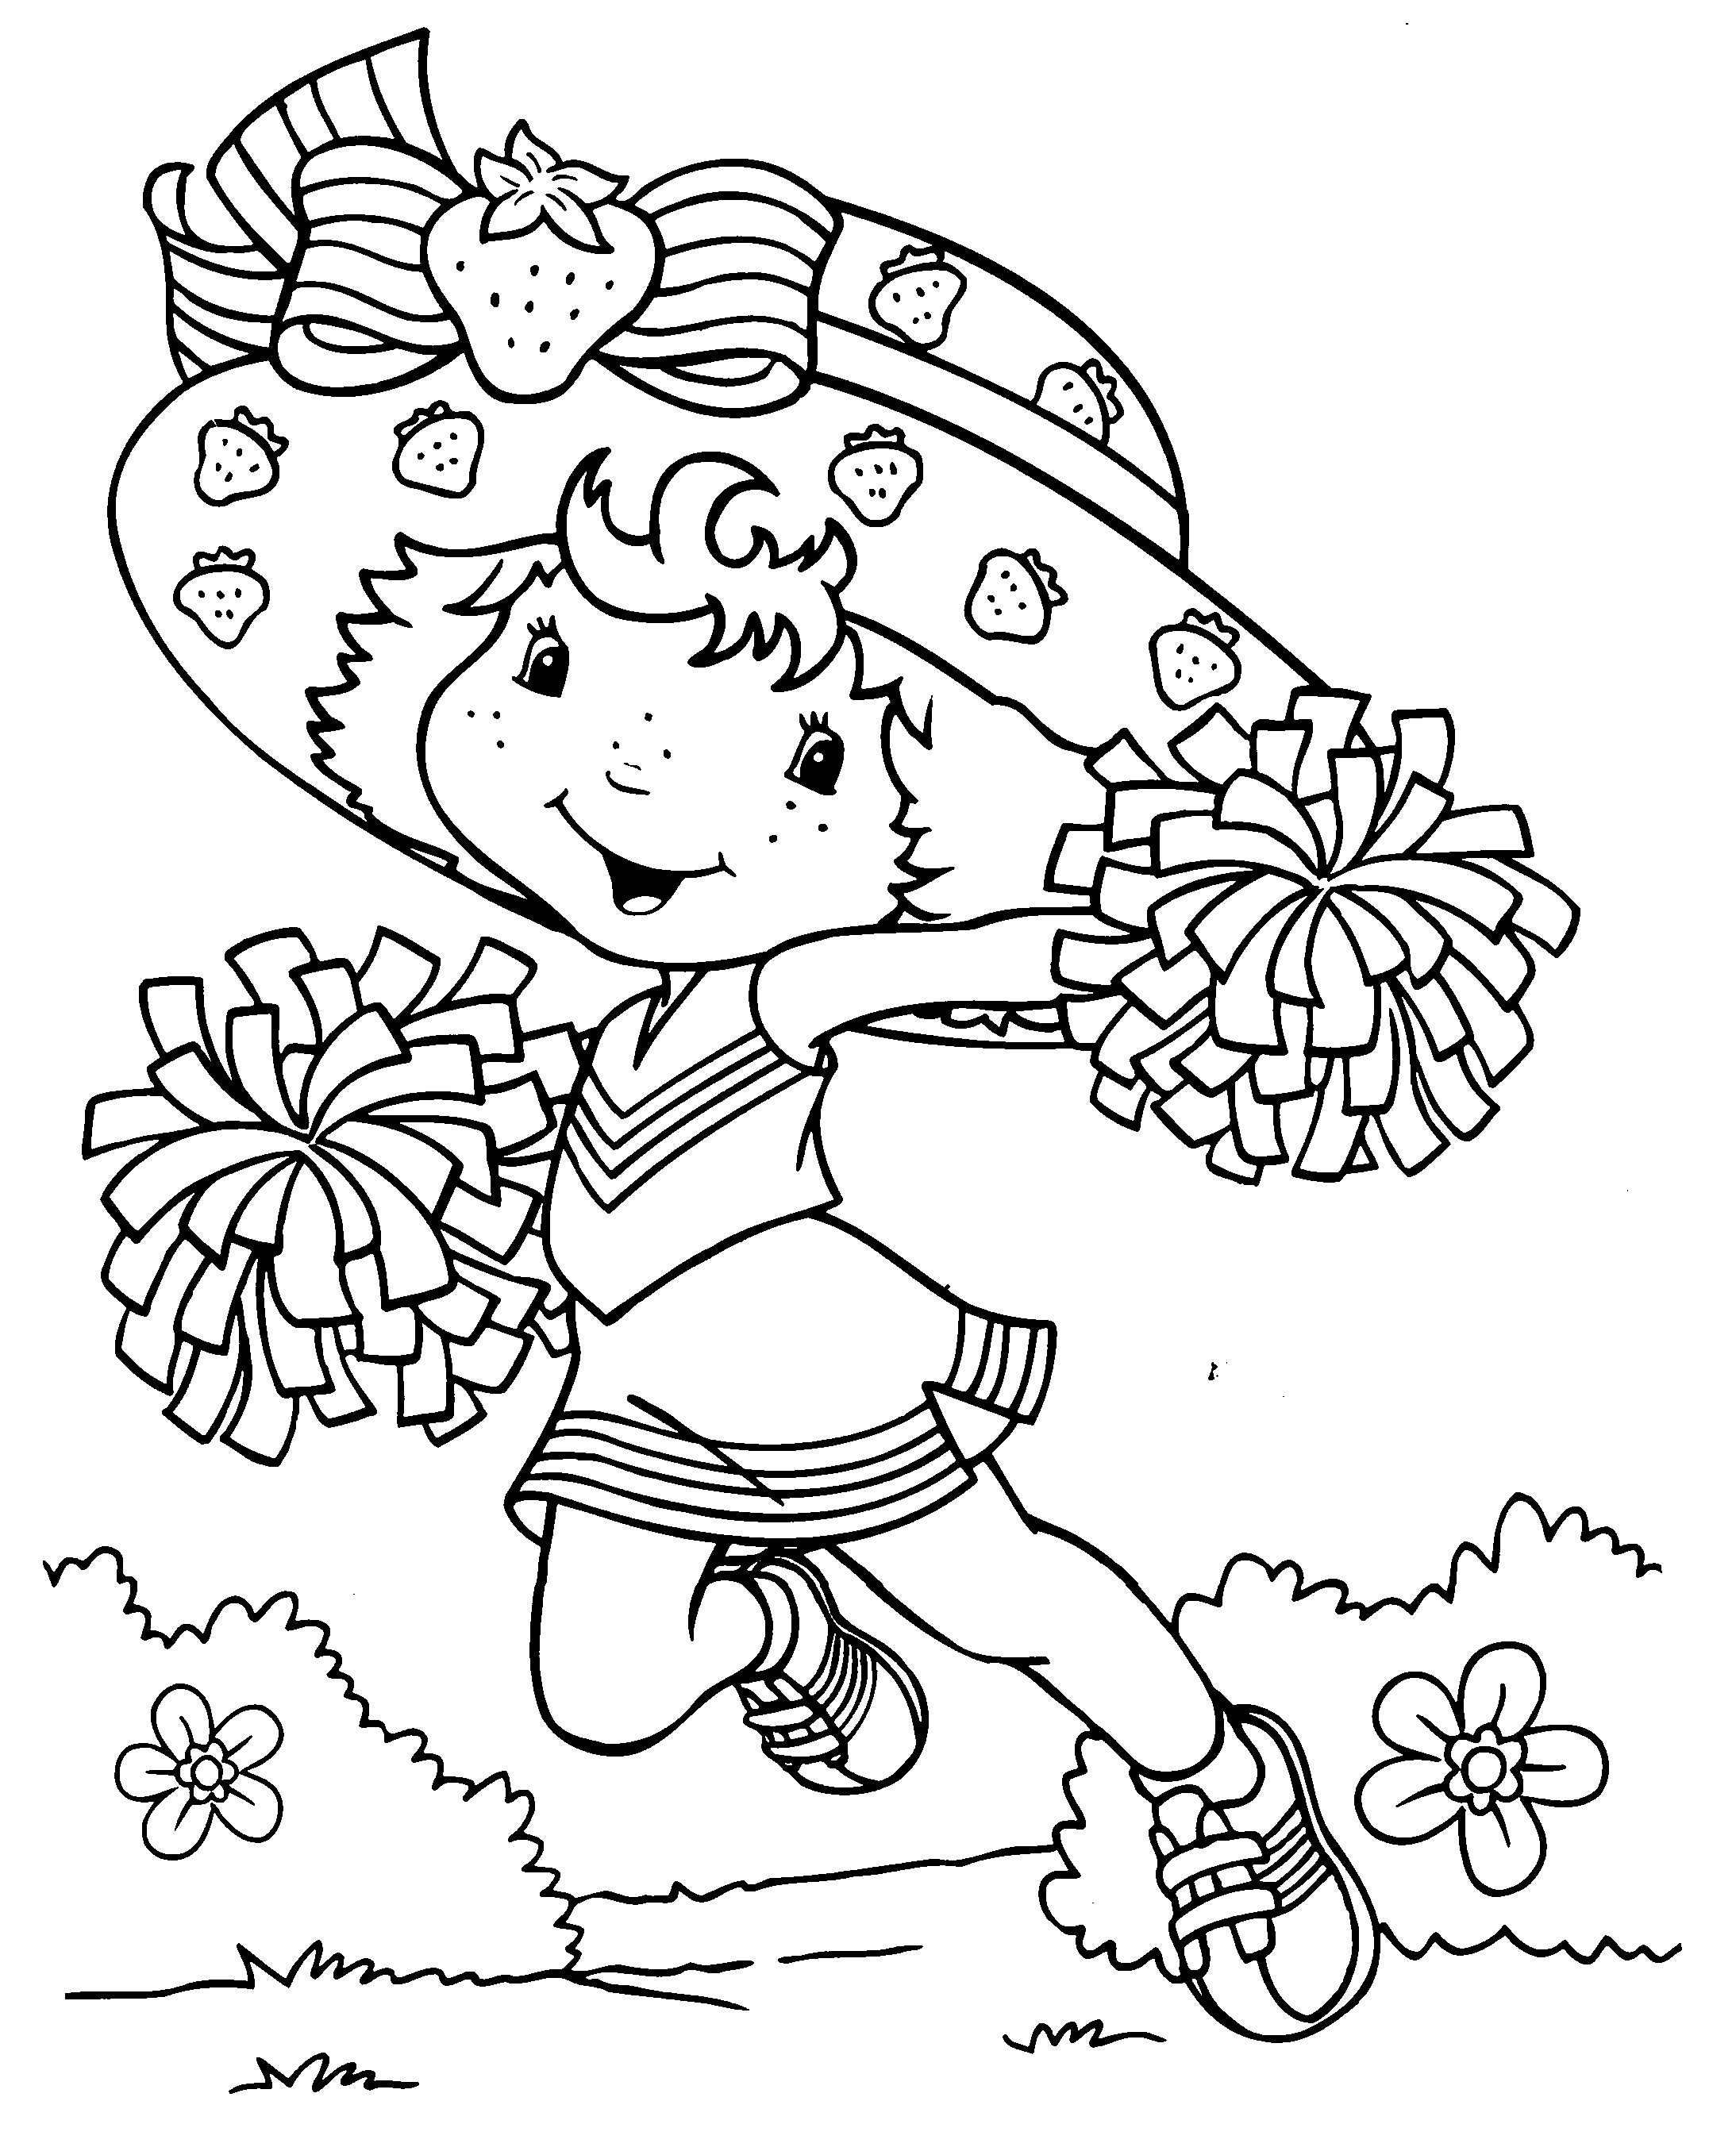 Coloring Sheets For Girls To Color Now  Coloring Pages For Girls 10